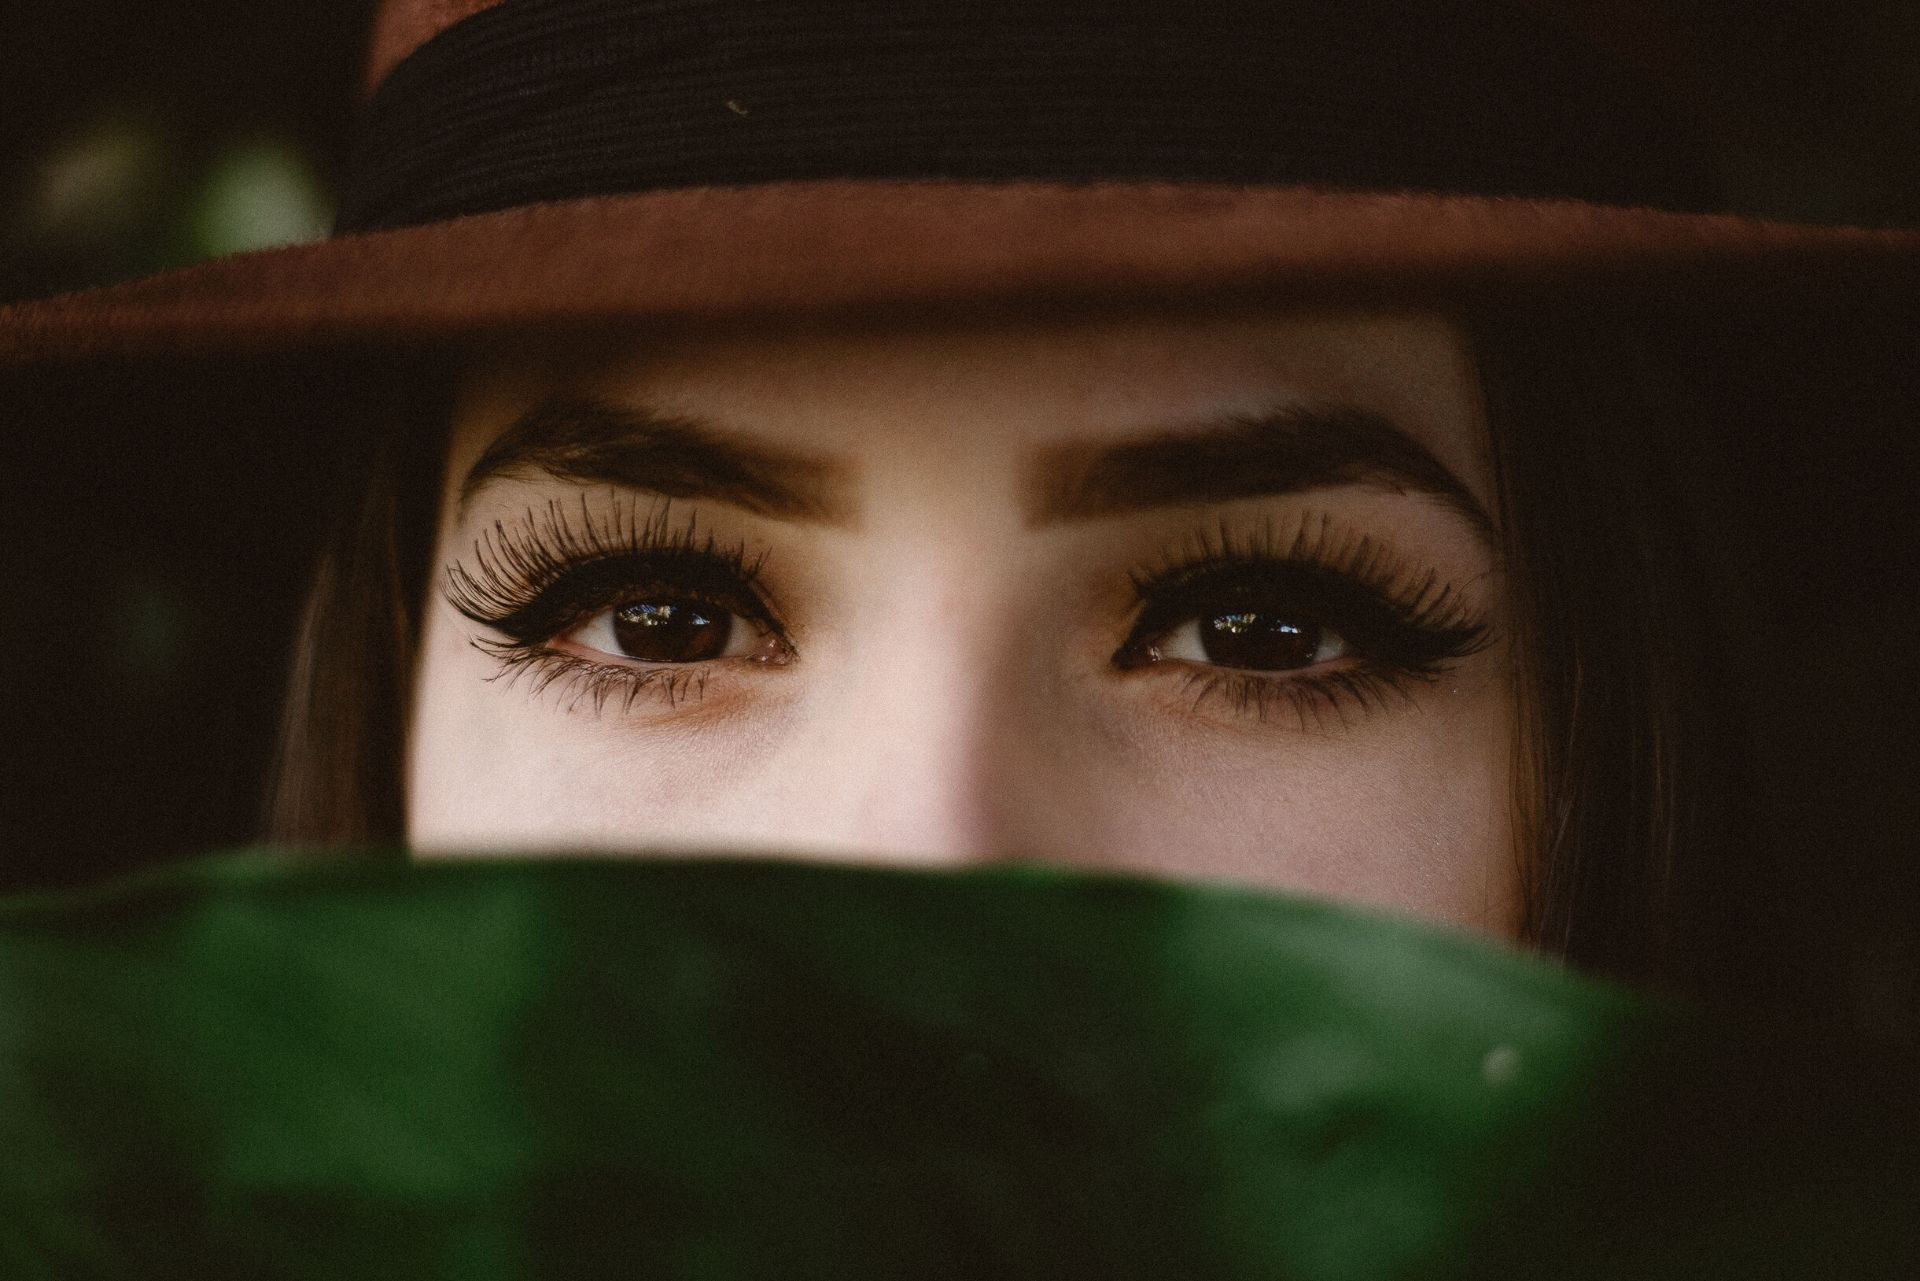 300+ Great Ways to Describe Eyes